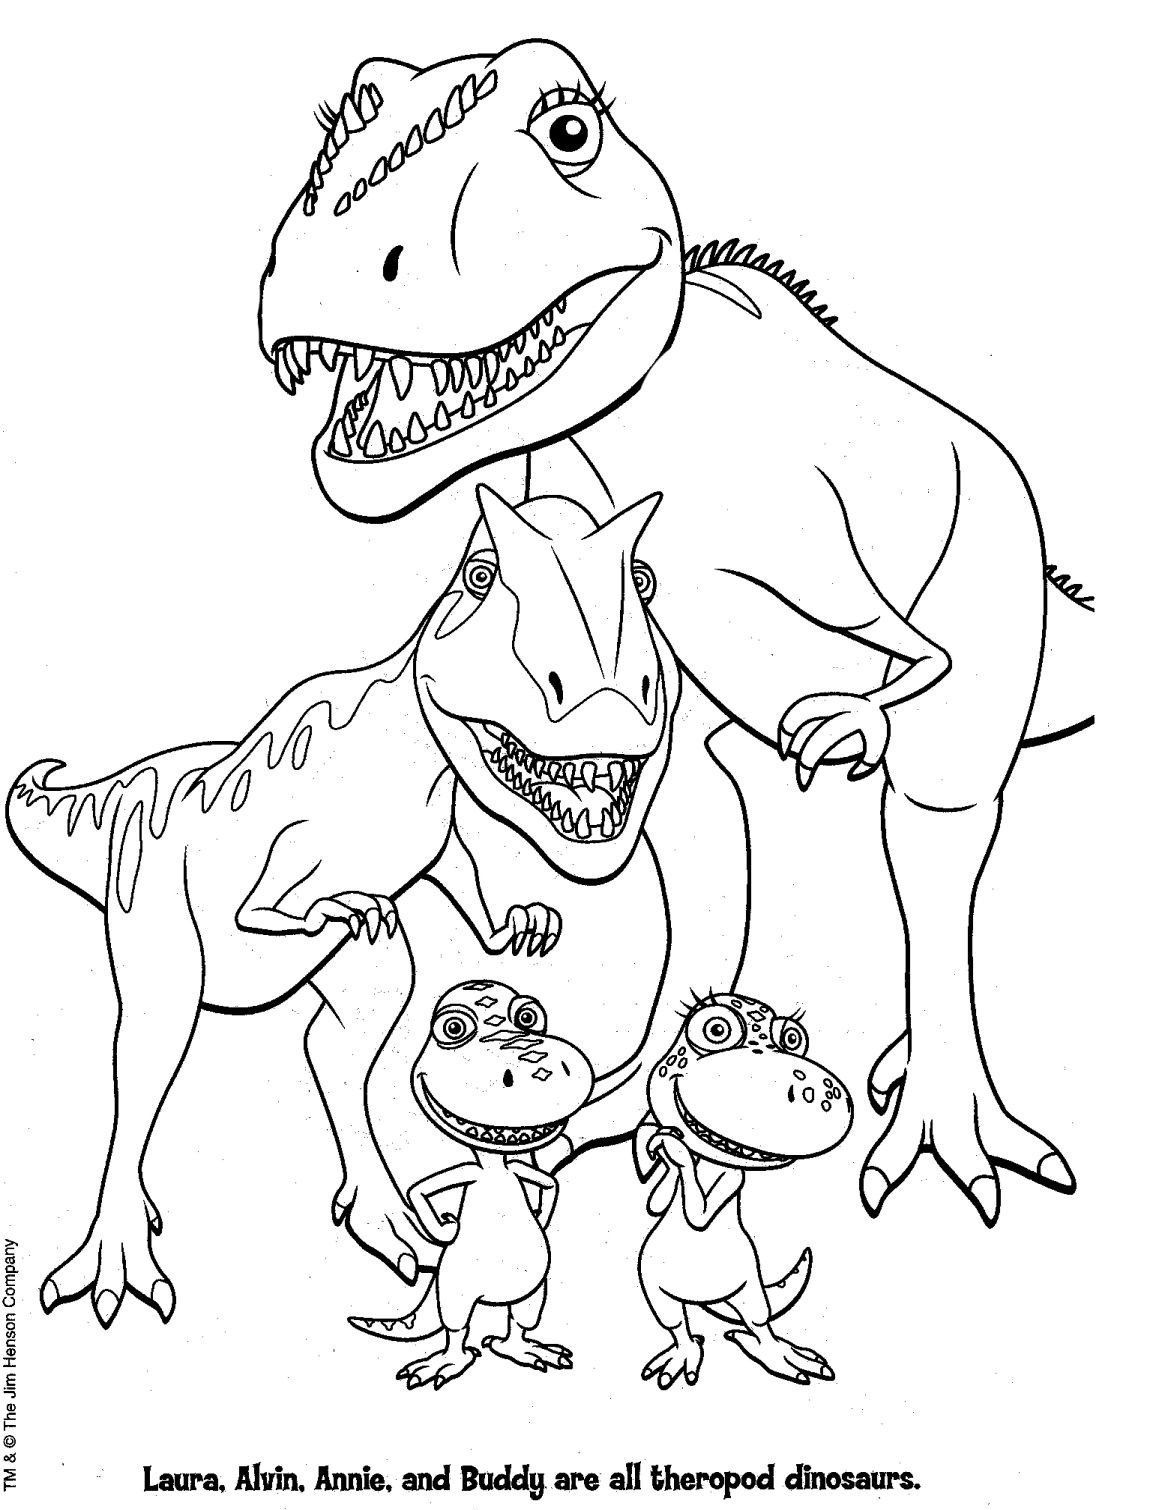 Dinosaur Coloring Pages Free Printable | Printable Coloring Pages ...